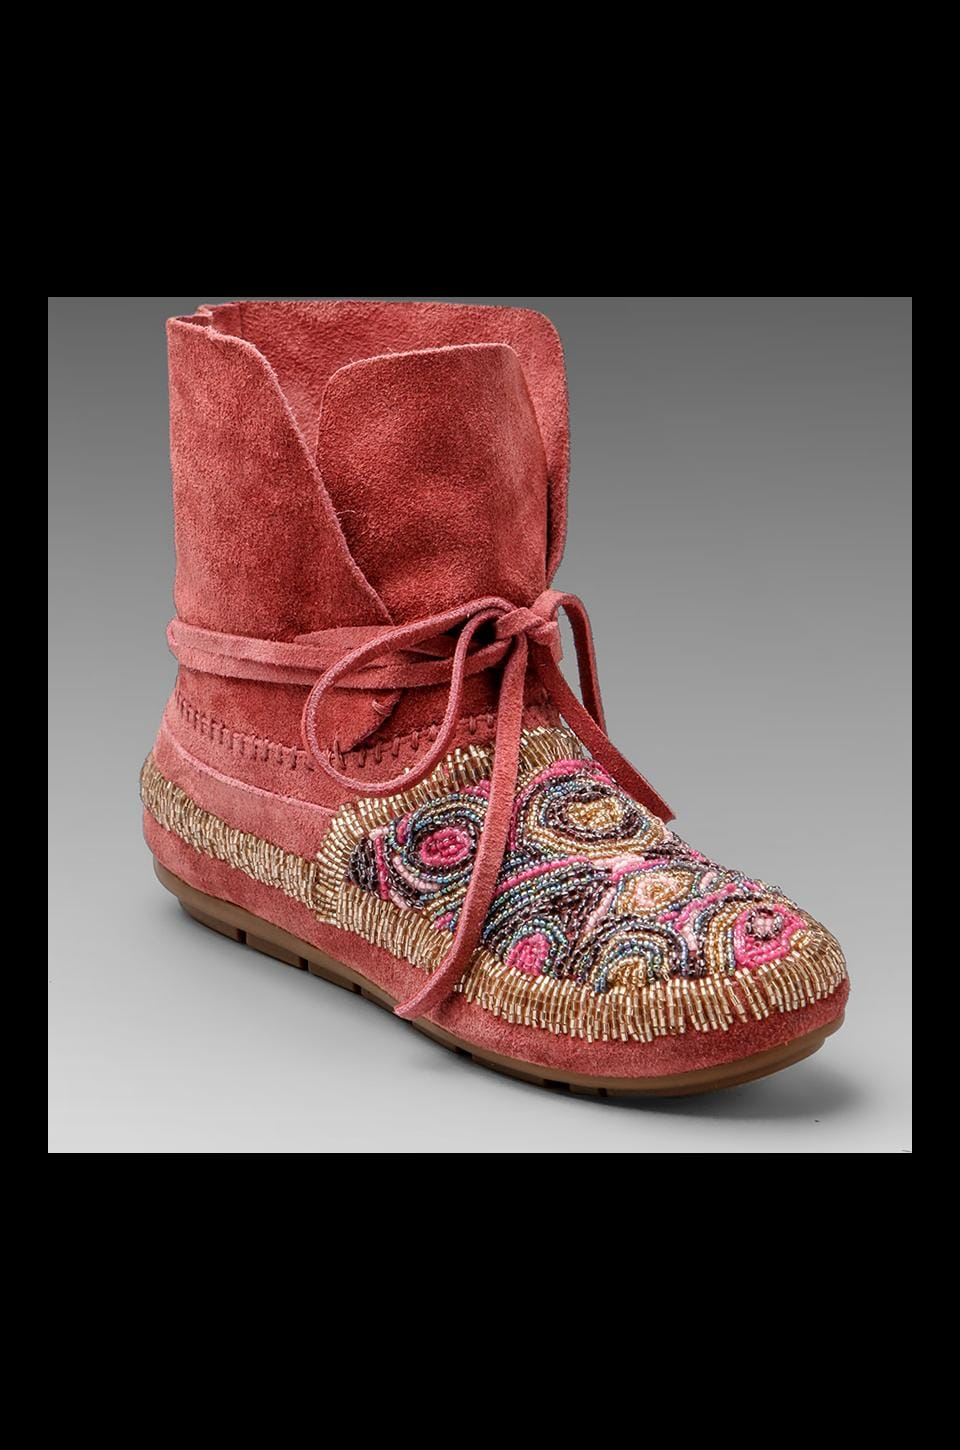 House of Harlow 1960 House of Harlow Mallory Moccasin in Pink